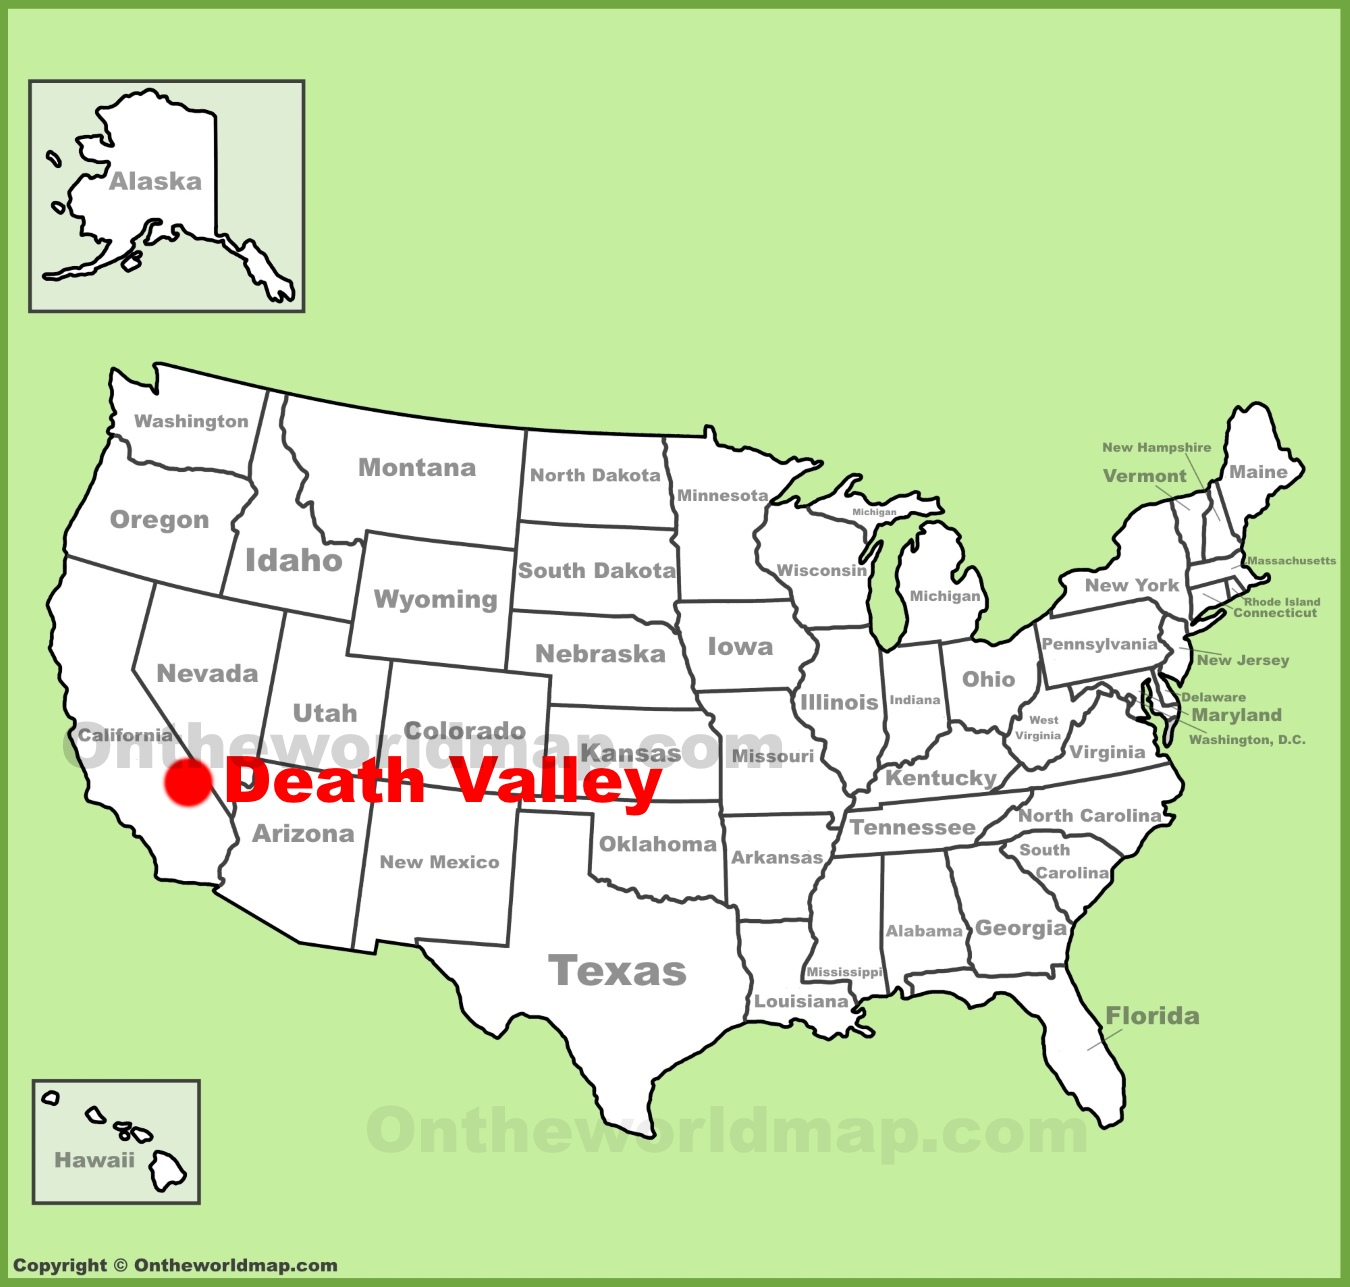 Us Map Death Valley Death Valley Maps | USA | Maps of Death Valley National Park